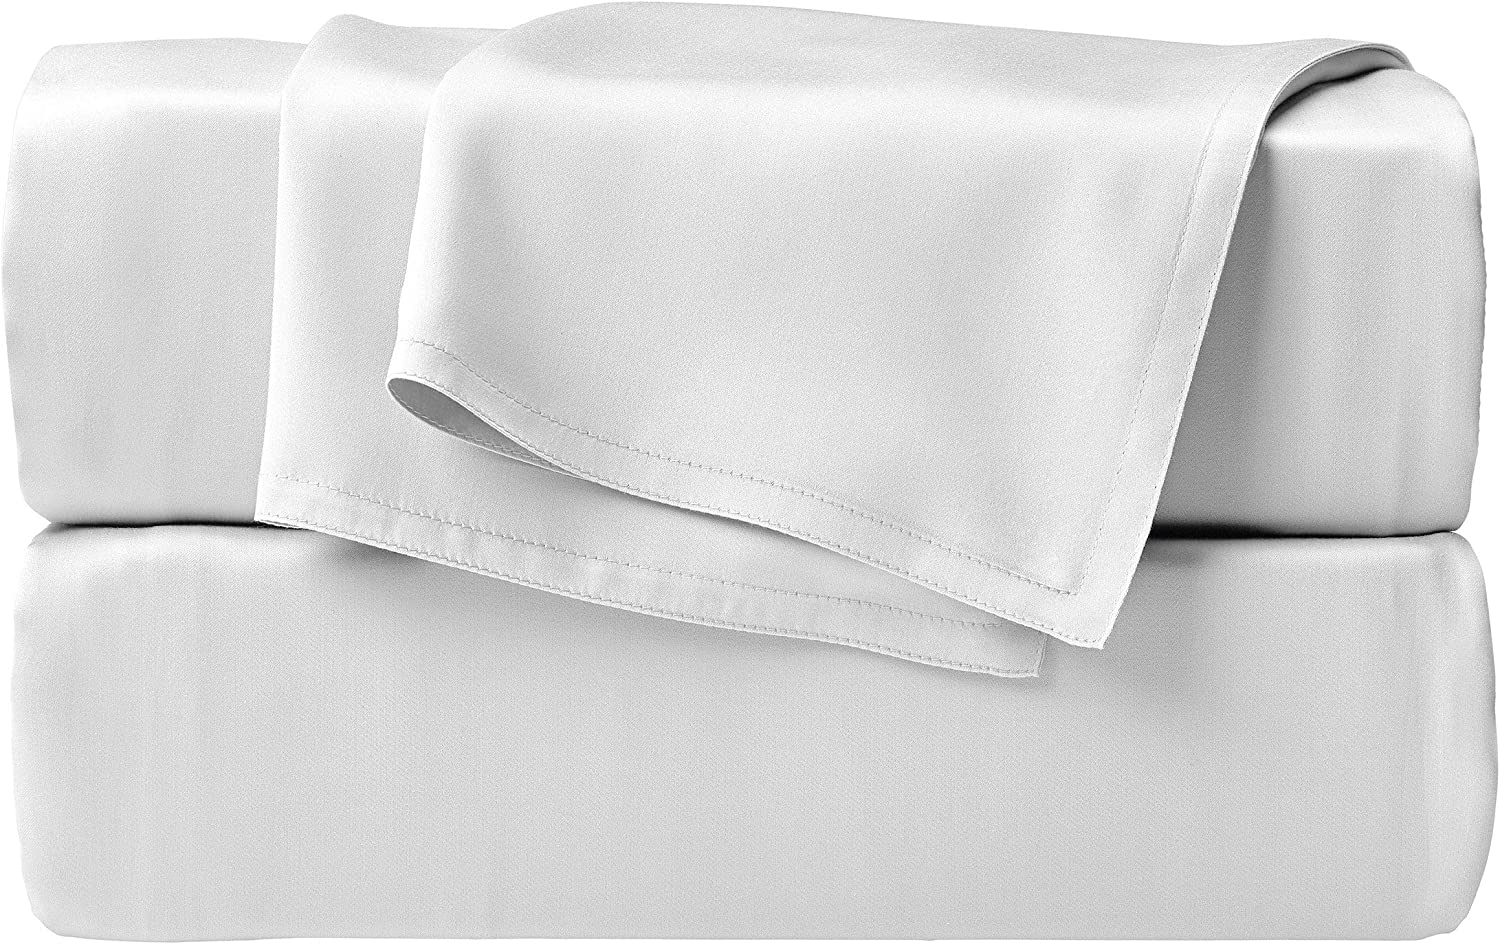 STYLINEN 100% Tencel Sheets Queen Size Bed Sheets 4pc Set, 100% Eucalyptus Lyocell Sheets Set, Silky Soft & Smooth, Breathable, 16